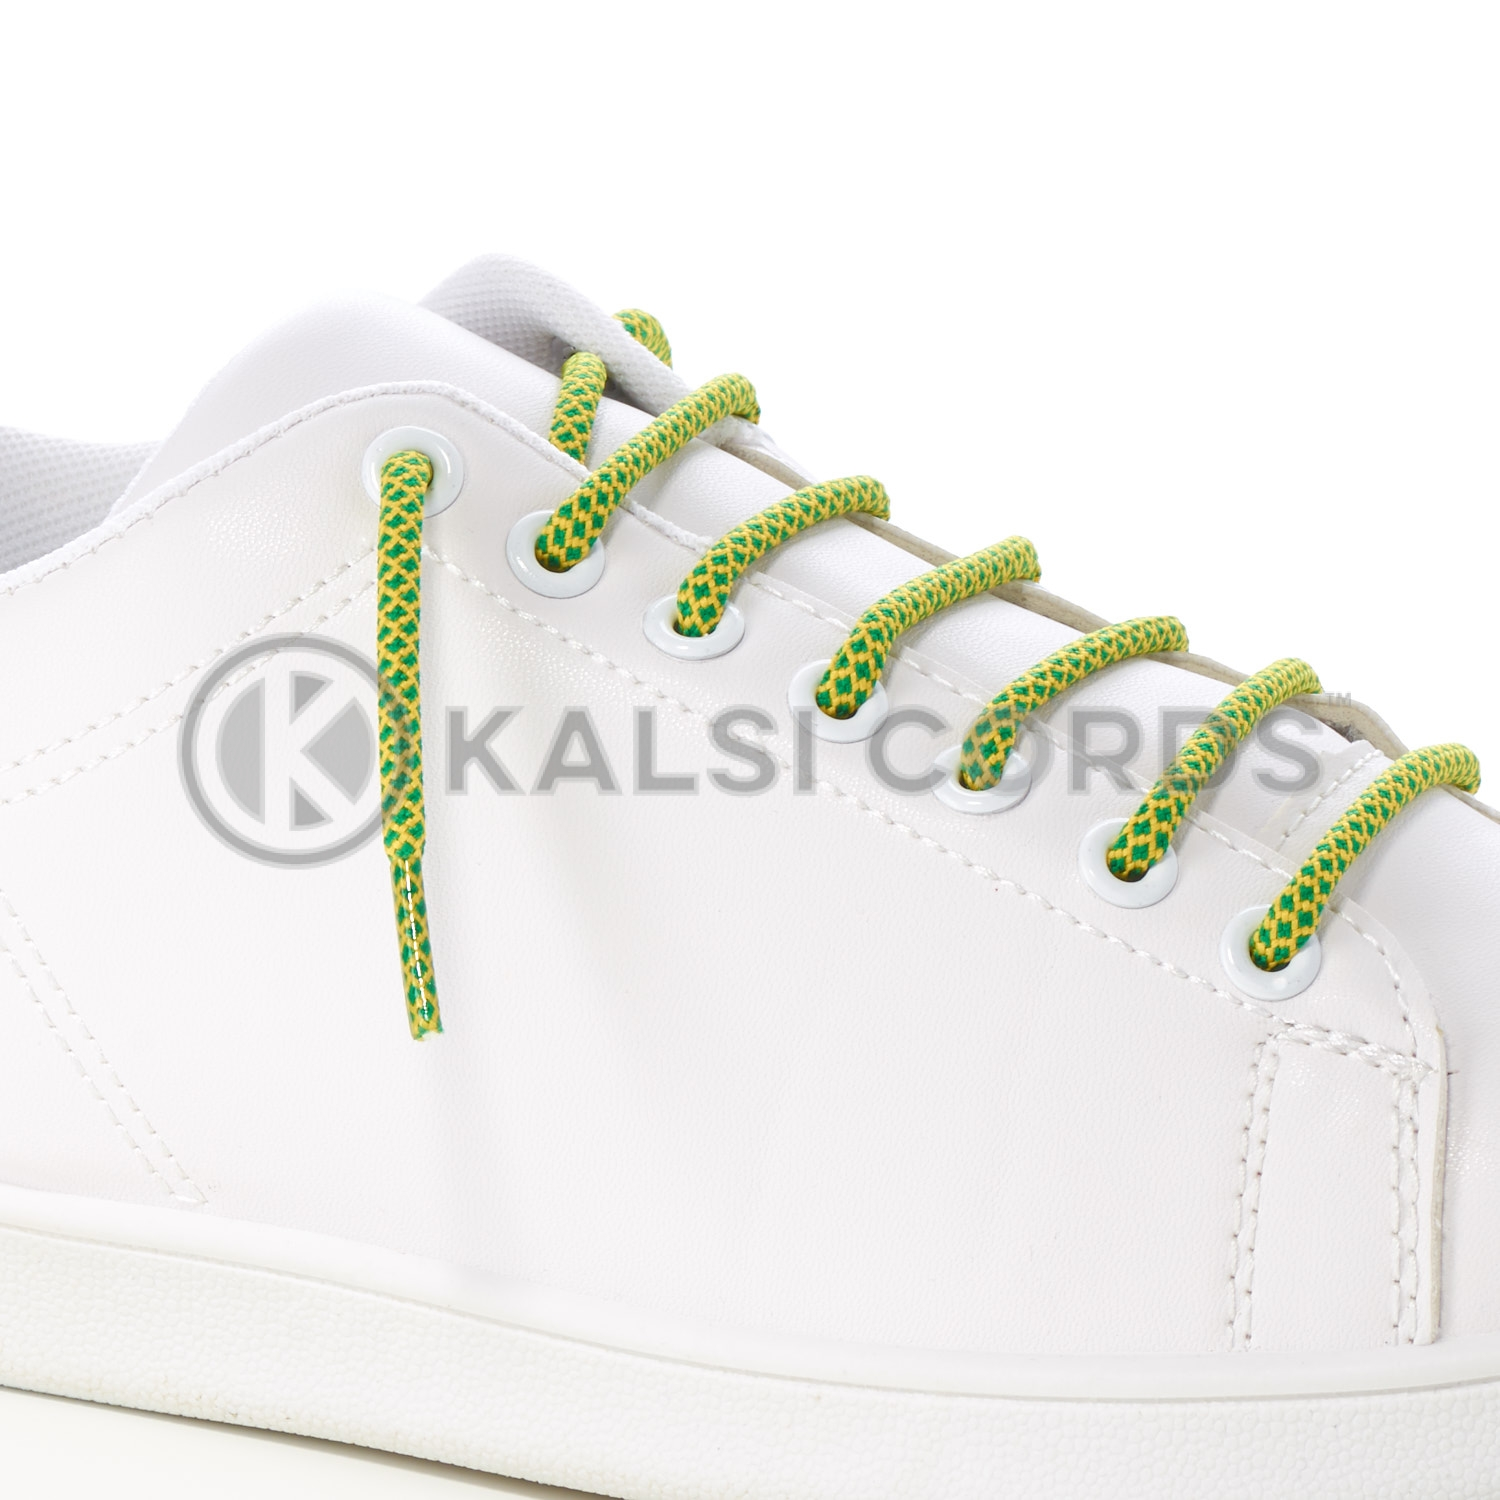 T655 5mm Round Cord Honeycomb Shoe Lace Emerald Green Yellow Kids Trainers Adults Adidas Yeezy Boost Hiking Walking Boots Kalsi Cords